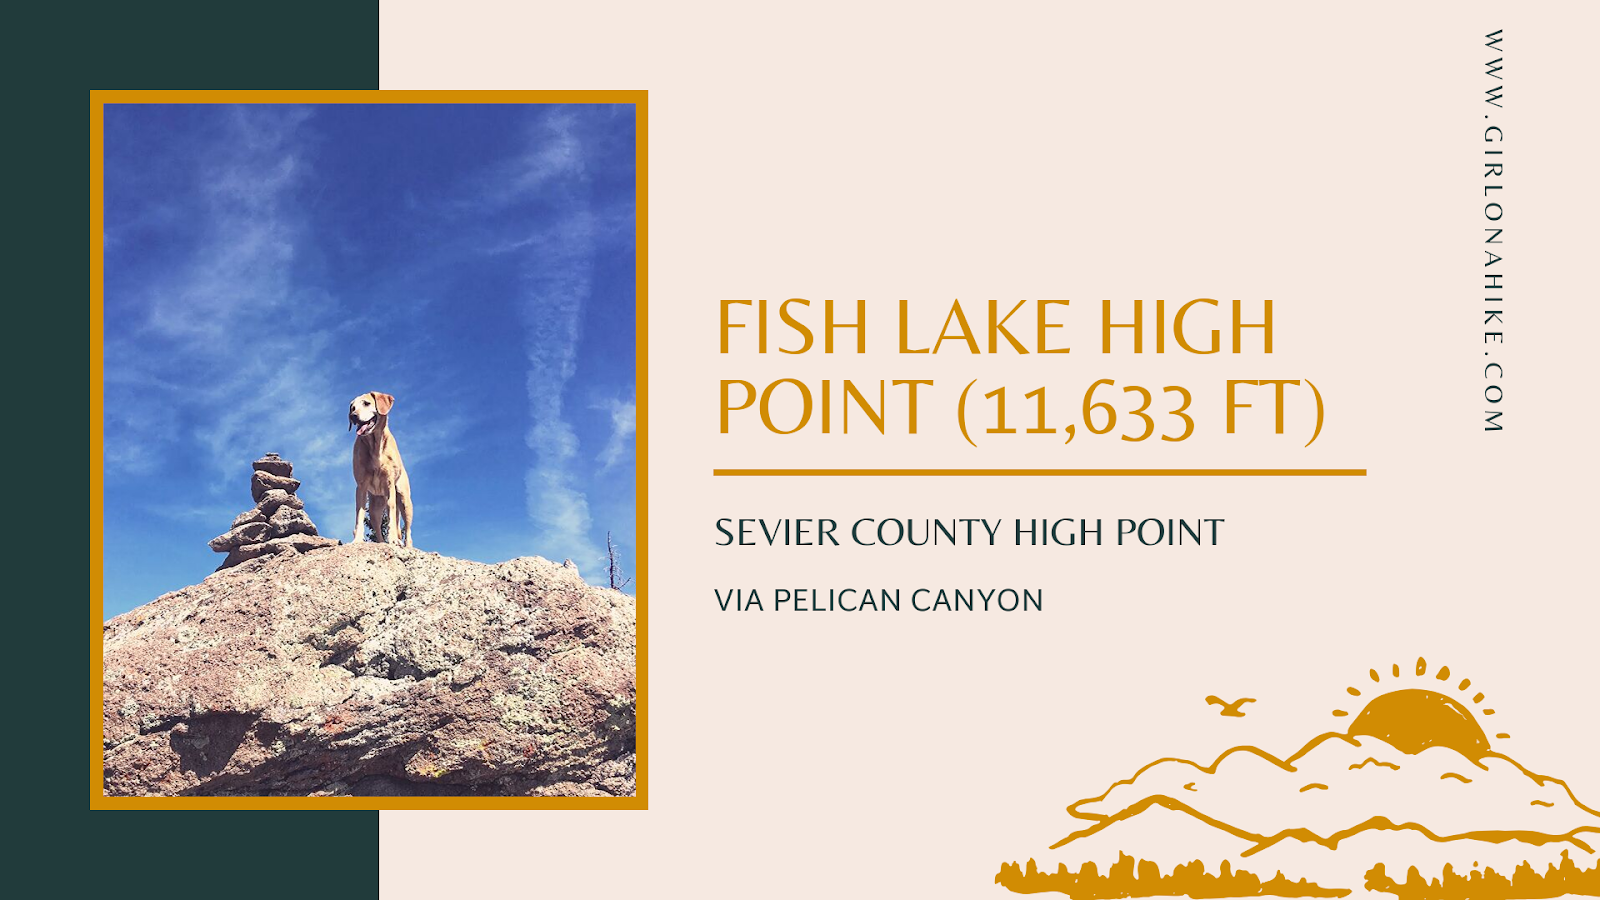 Hiking to Fish Lake Hightop, Sevier County High Point